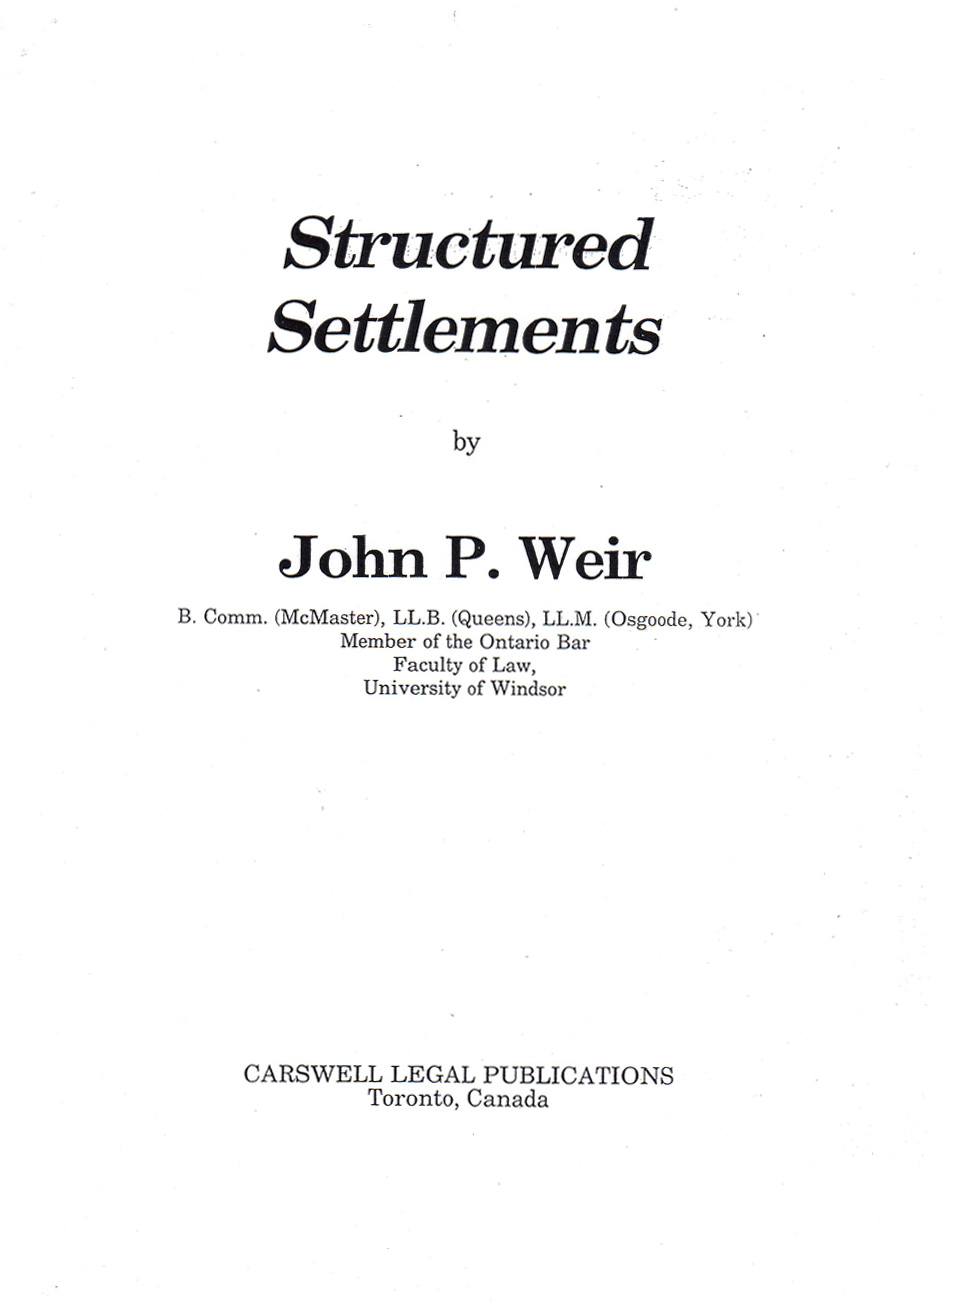 Structured Settlements by John P. Weir